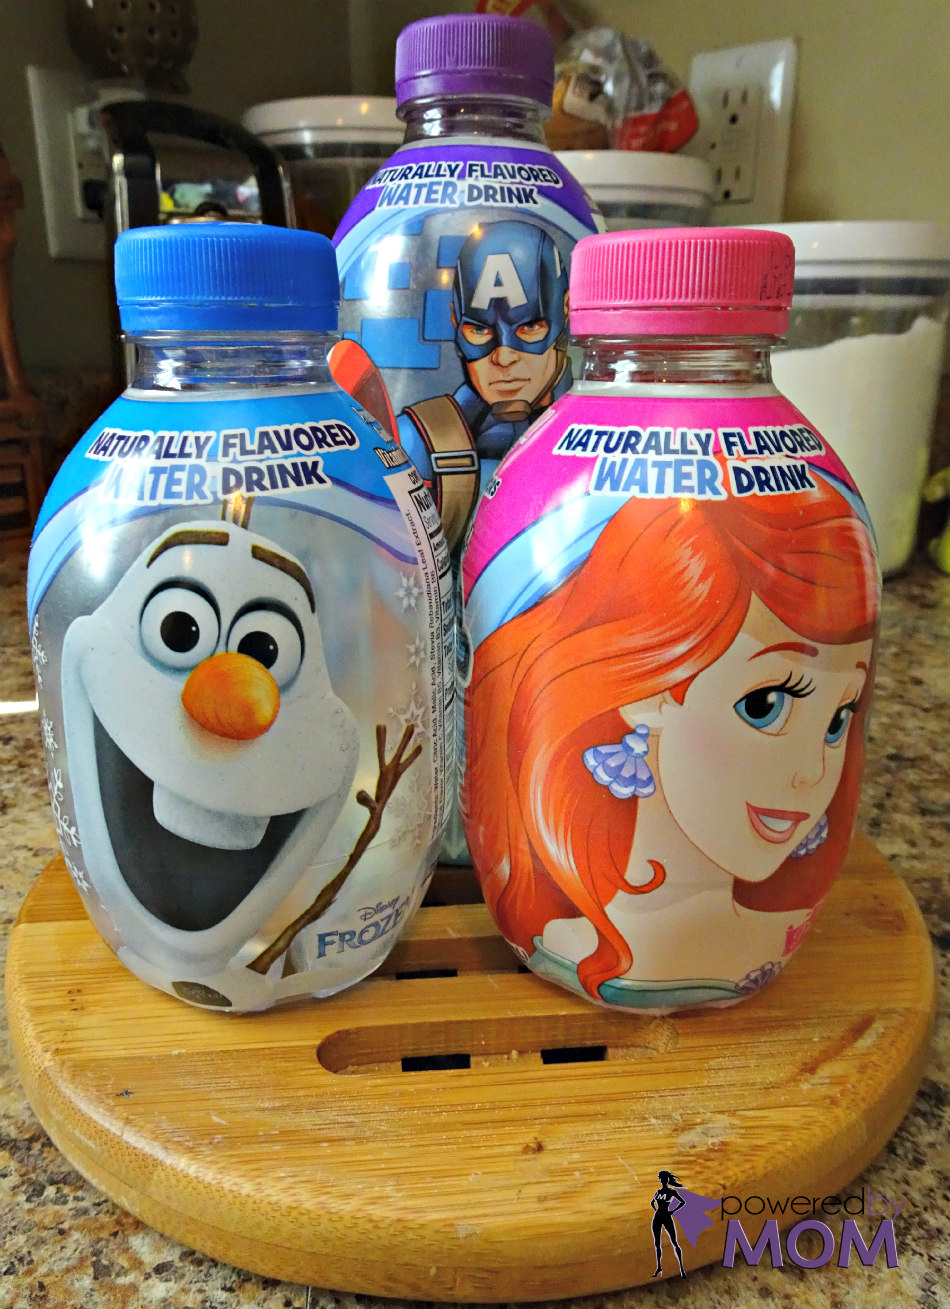 Aqua Ball Flavored Water Disney Characters